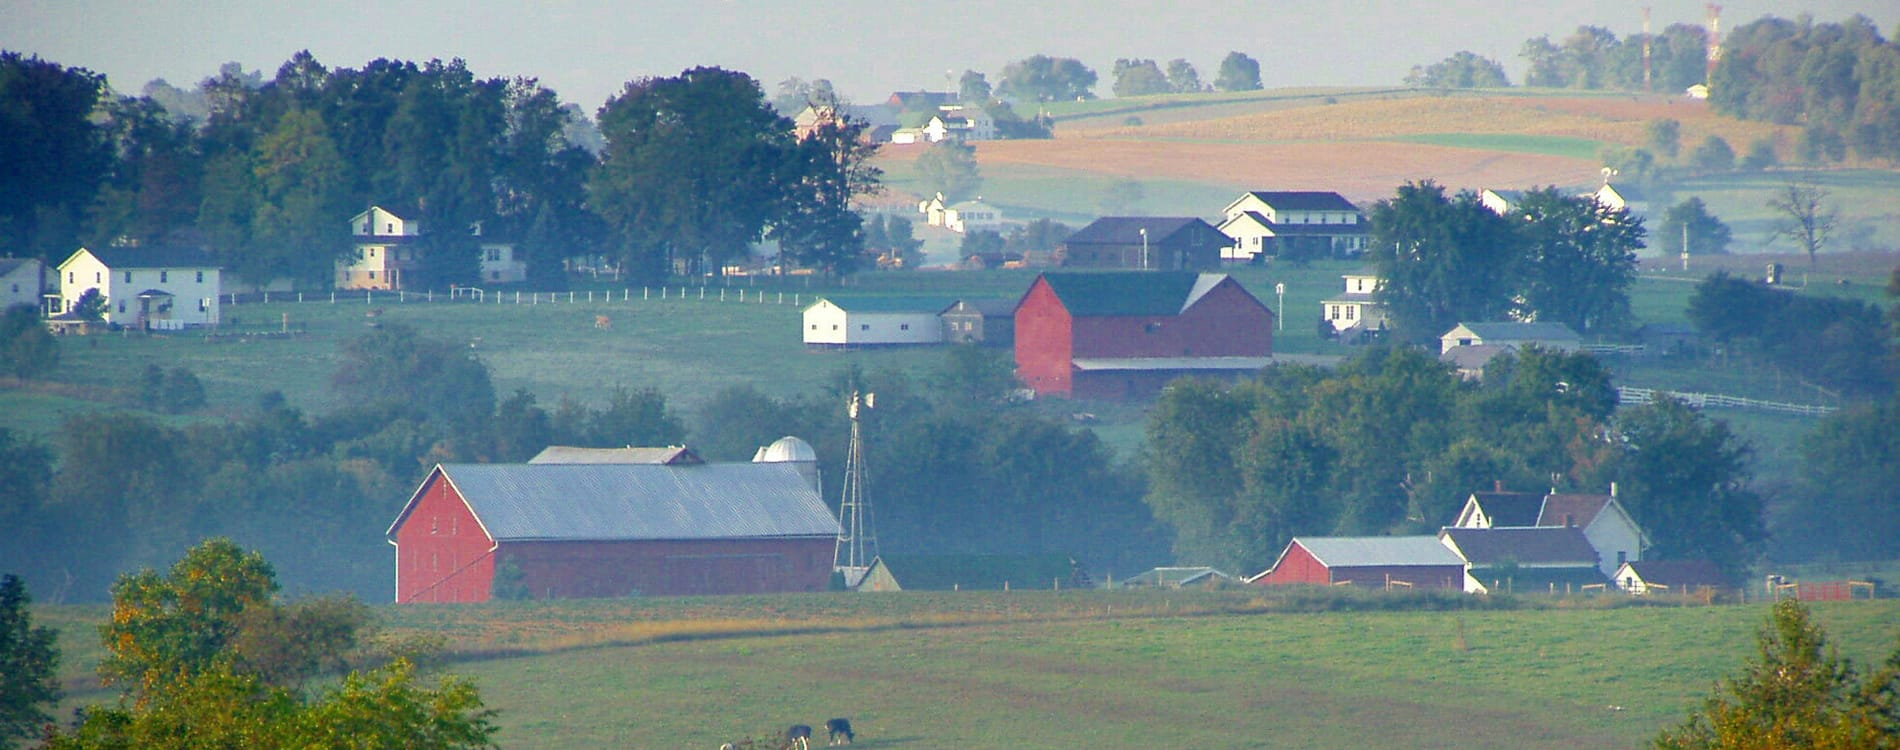 Amish Country, OH - Amish Farmland near Mount Eaton Ohio